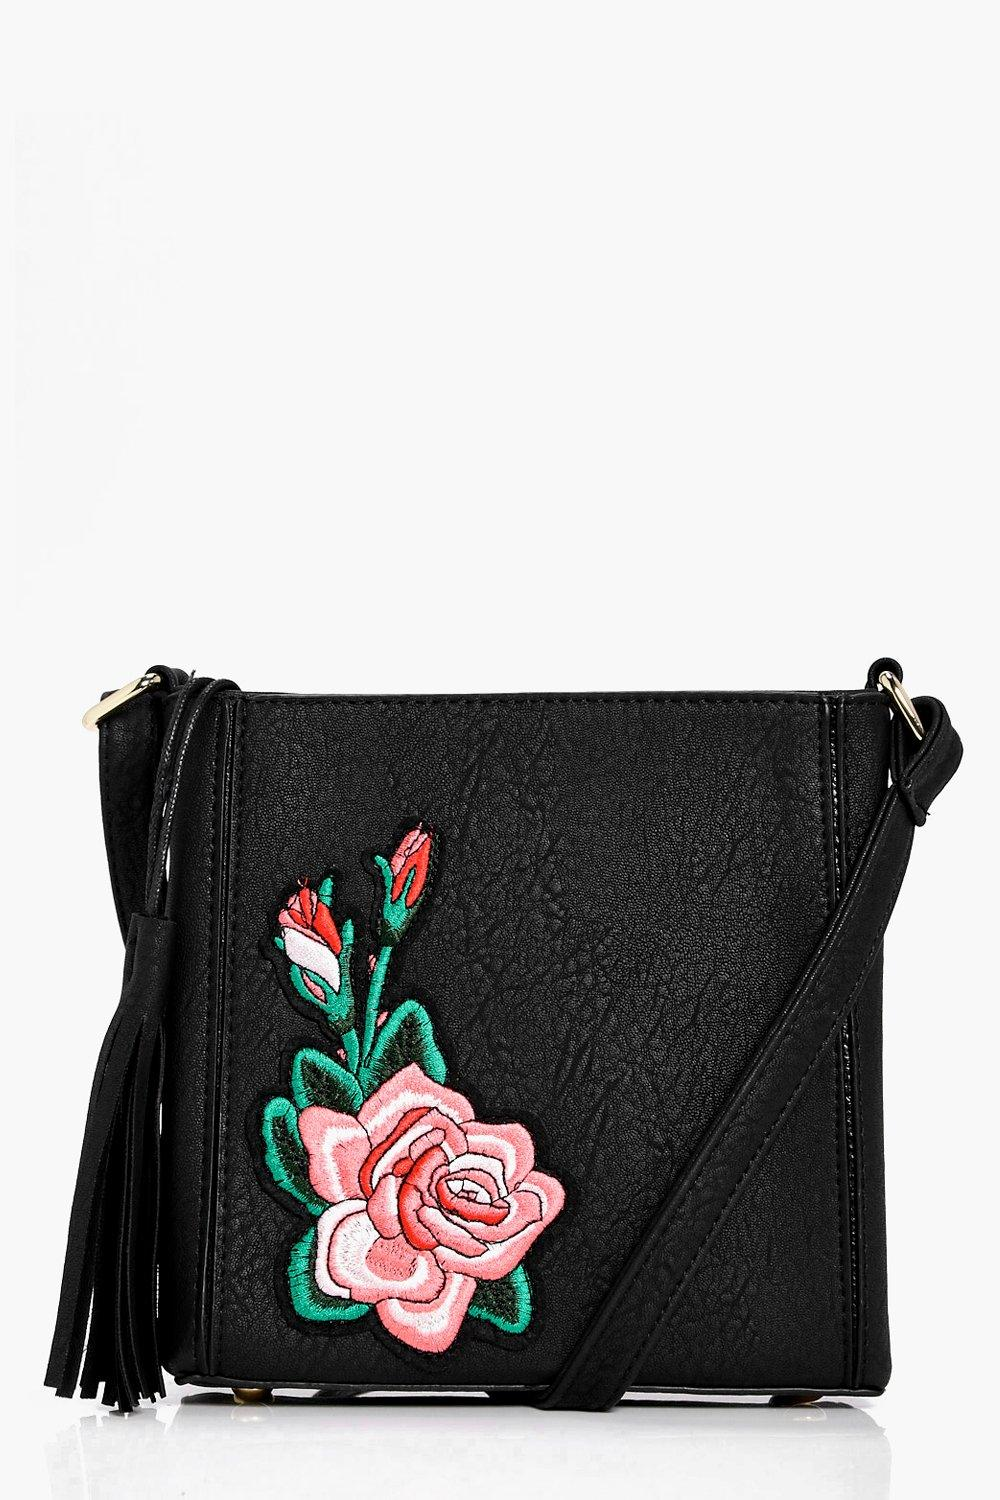 Rose Embroidered Cross Body Bag - black - Jessica